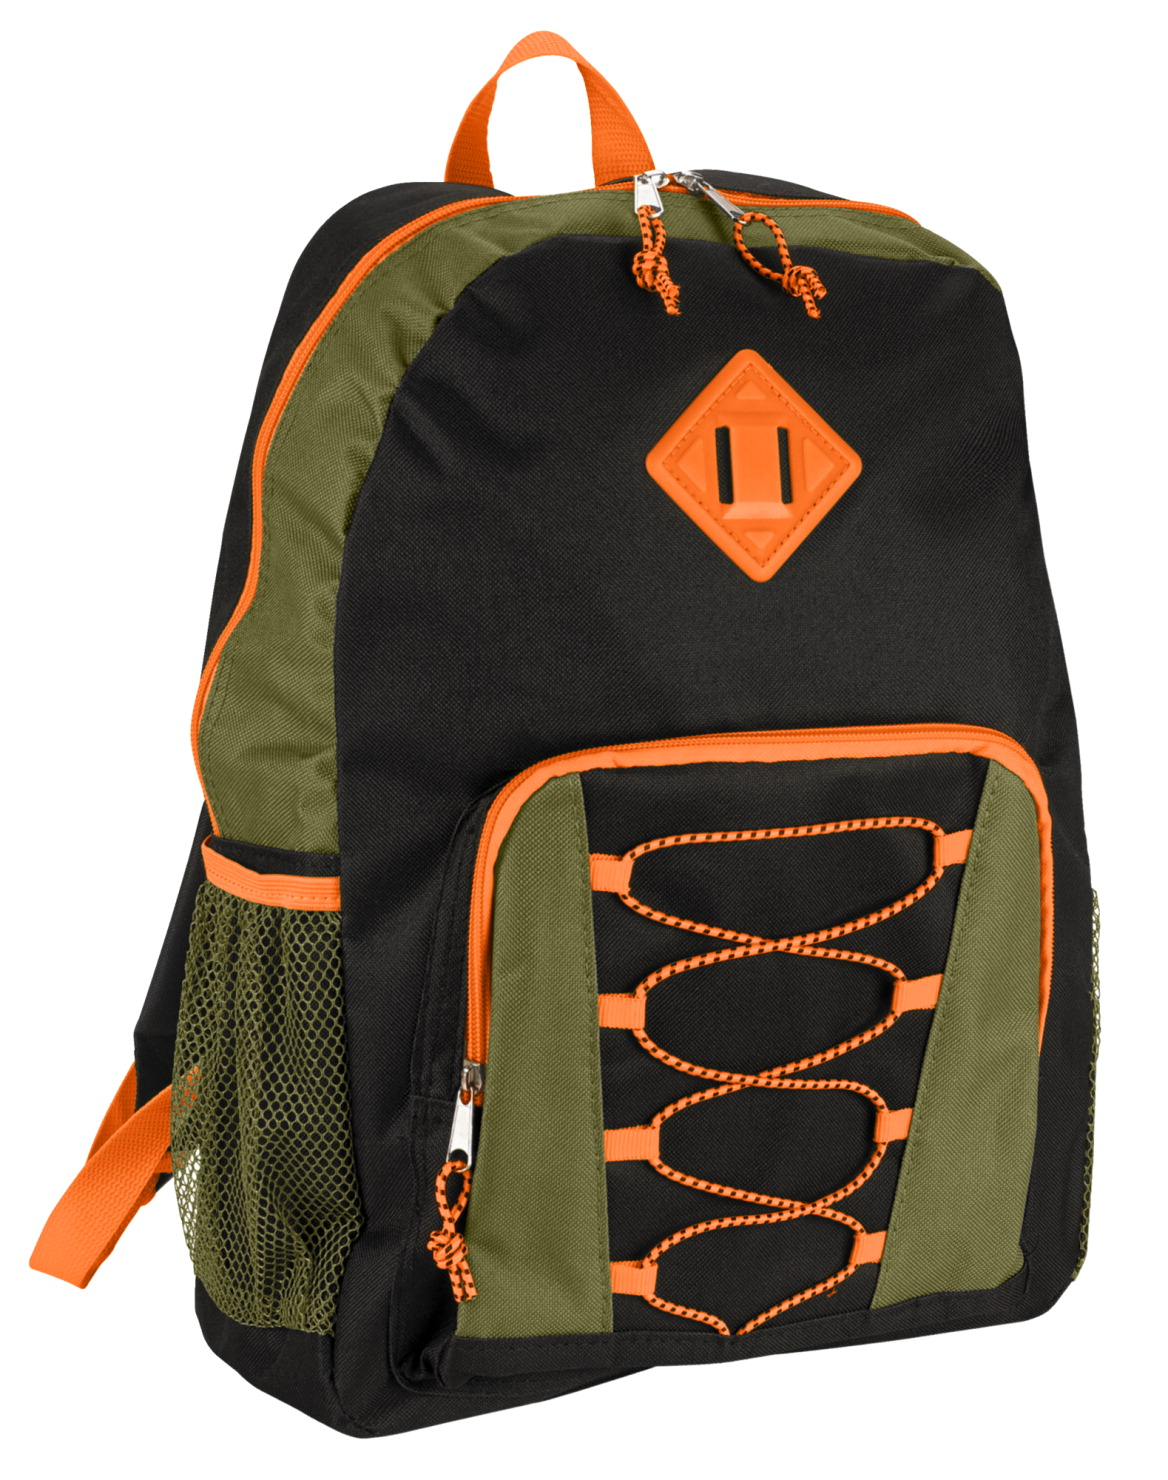 Junior Backpack with Bungee Cord, Black, Olive, Orange, 17 x 12 x 5-1/2 inches